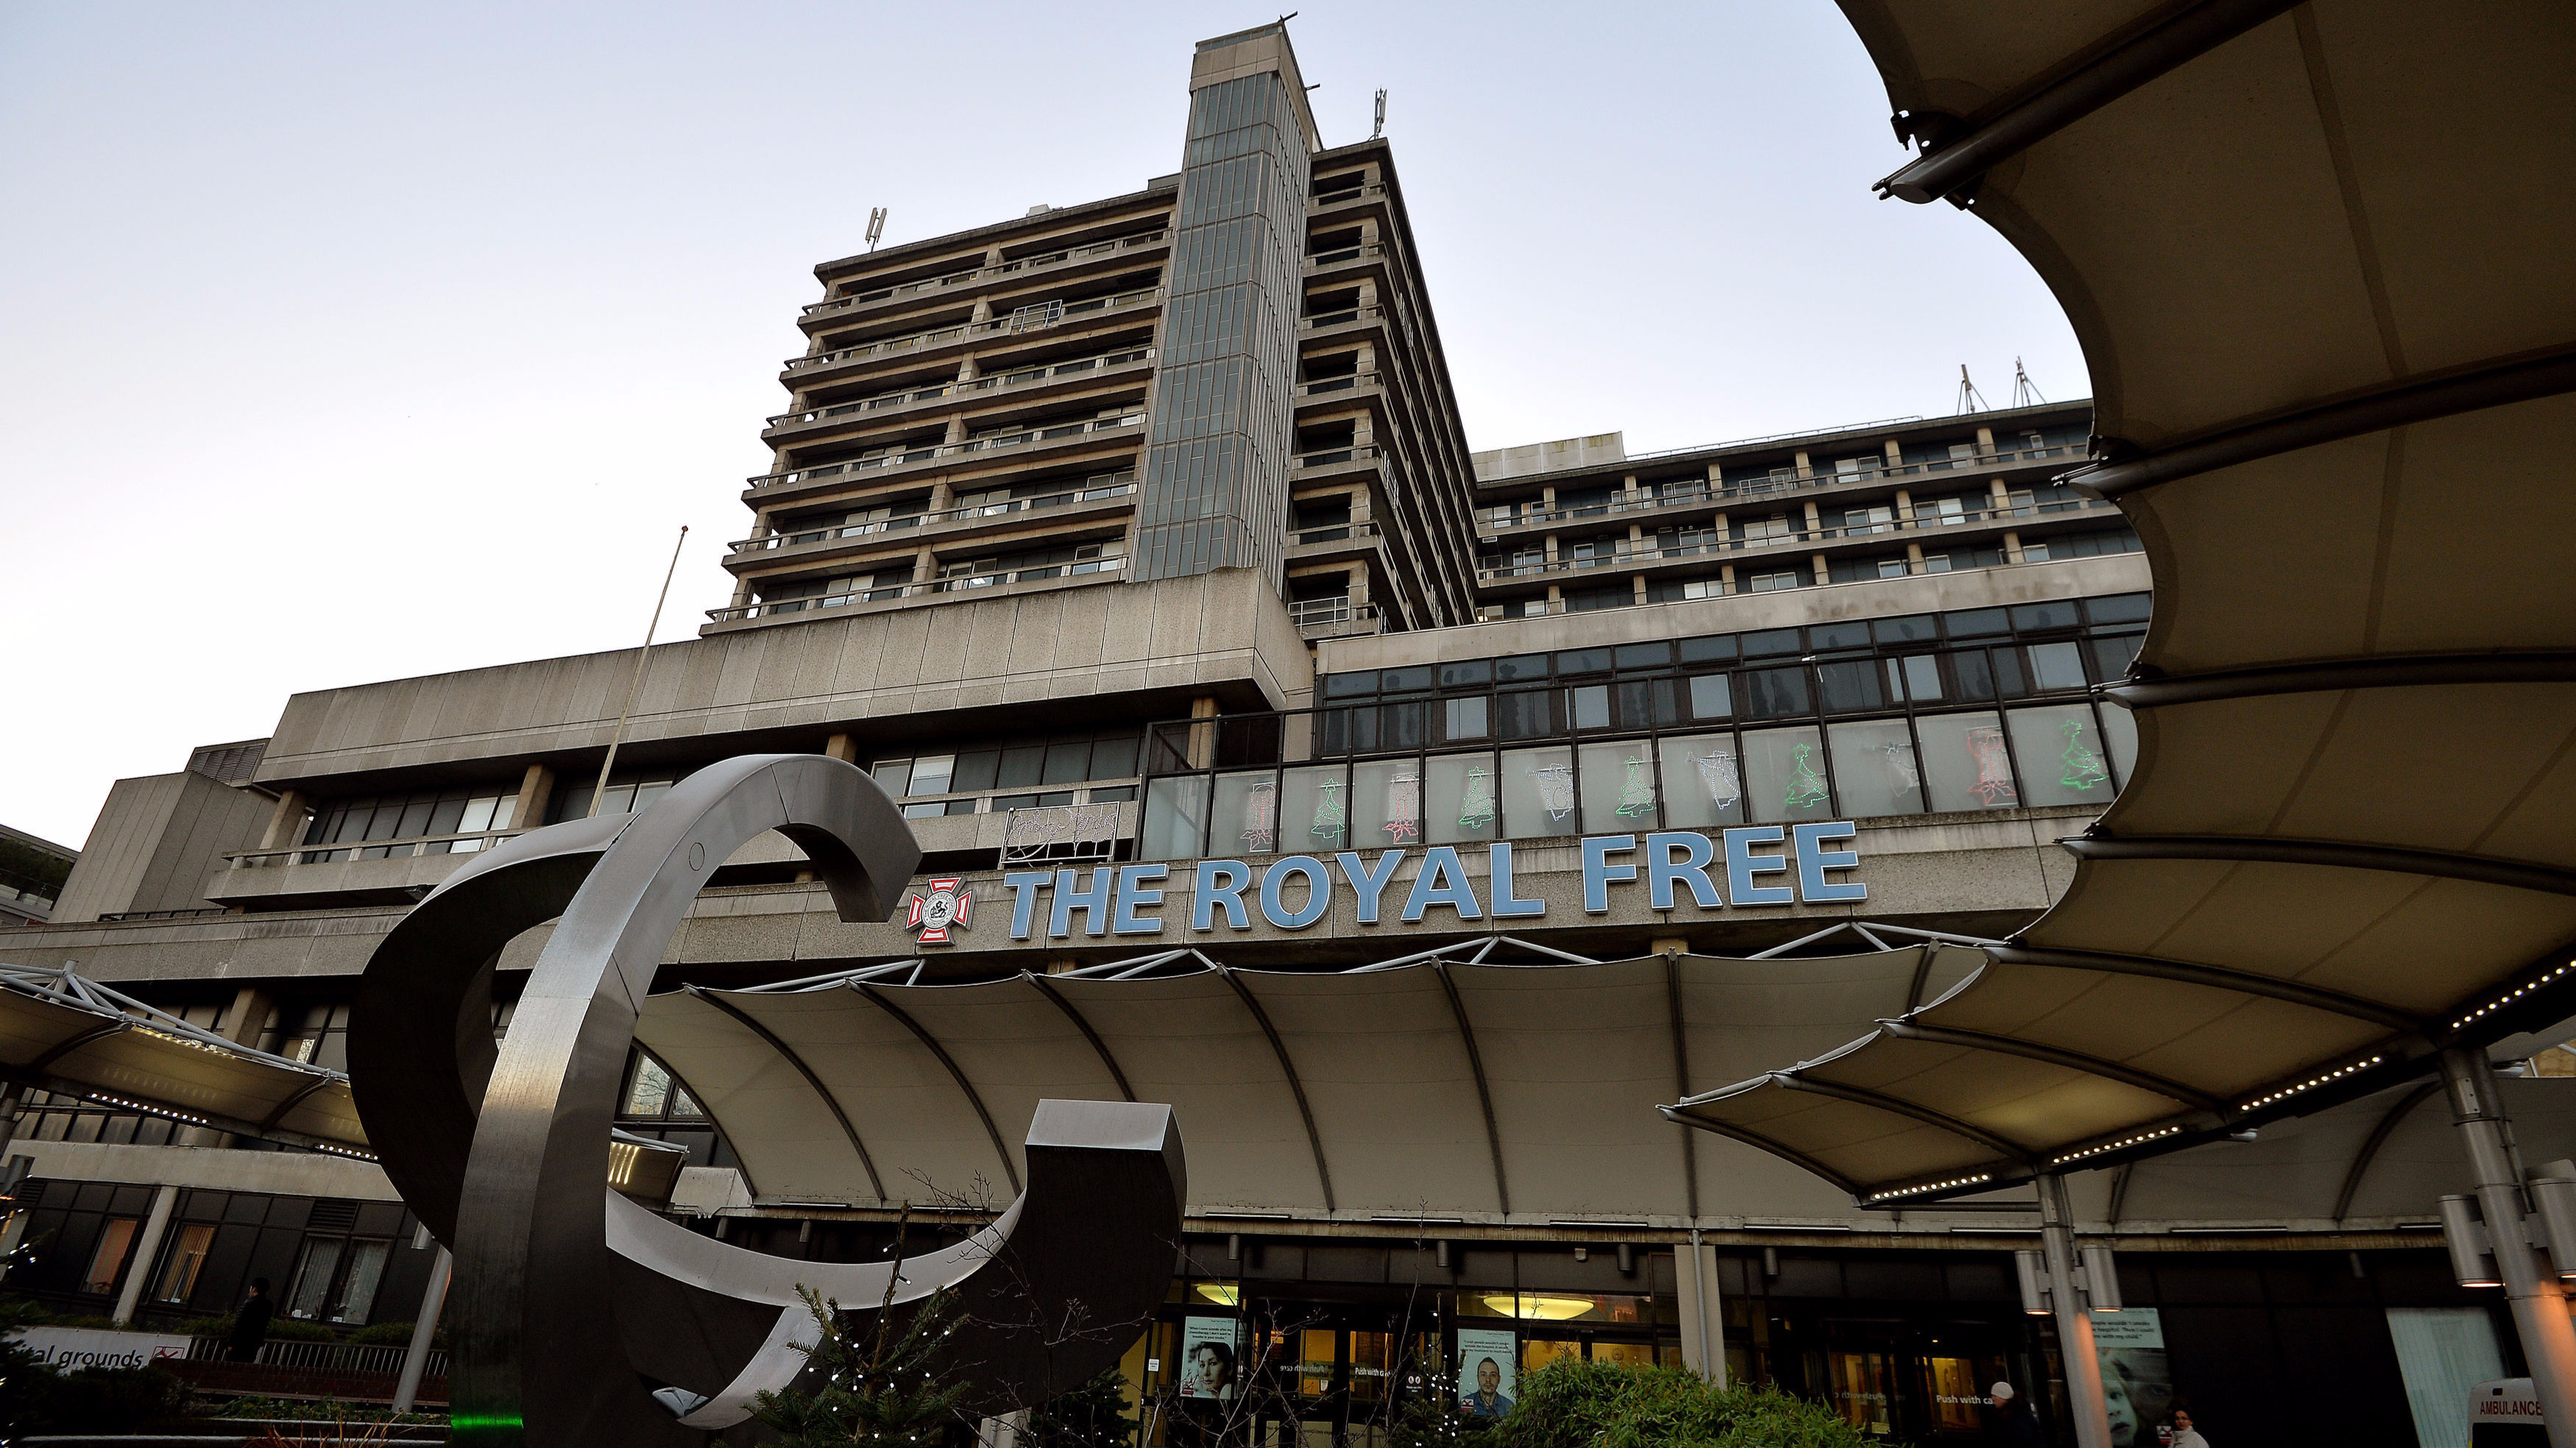 Patient Reports £11,500 In Cash Stolen From London Hospital